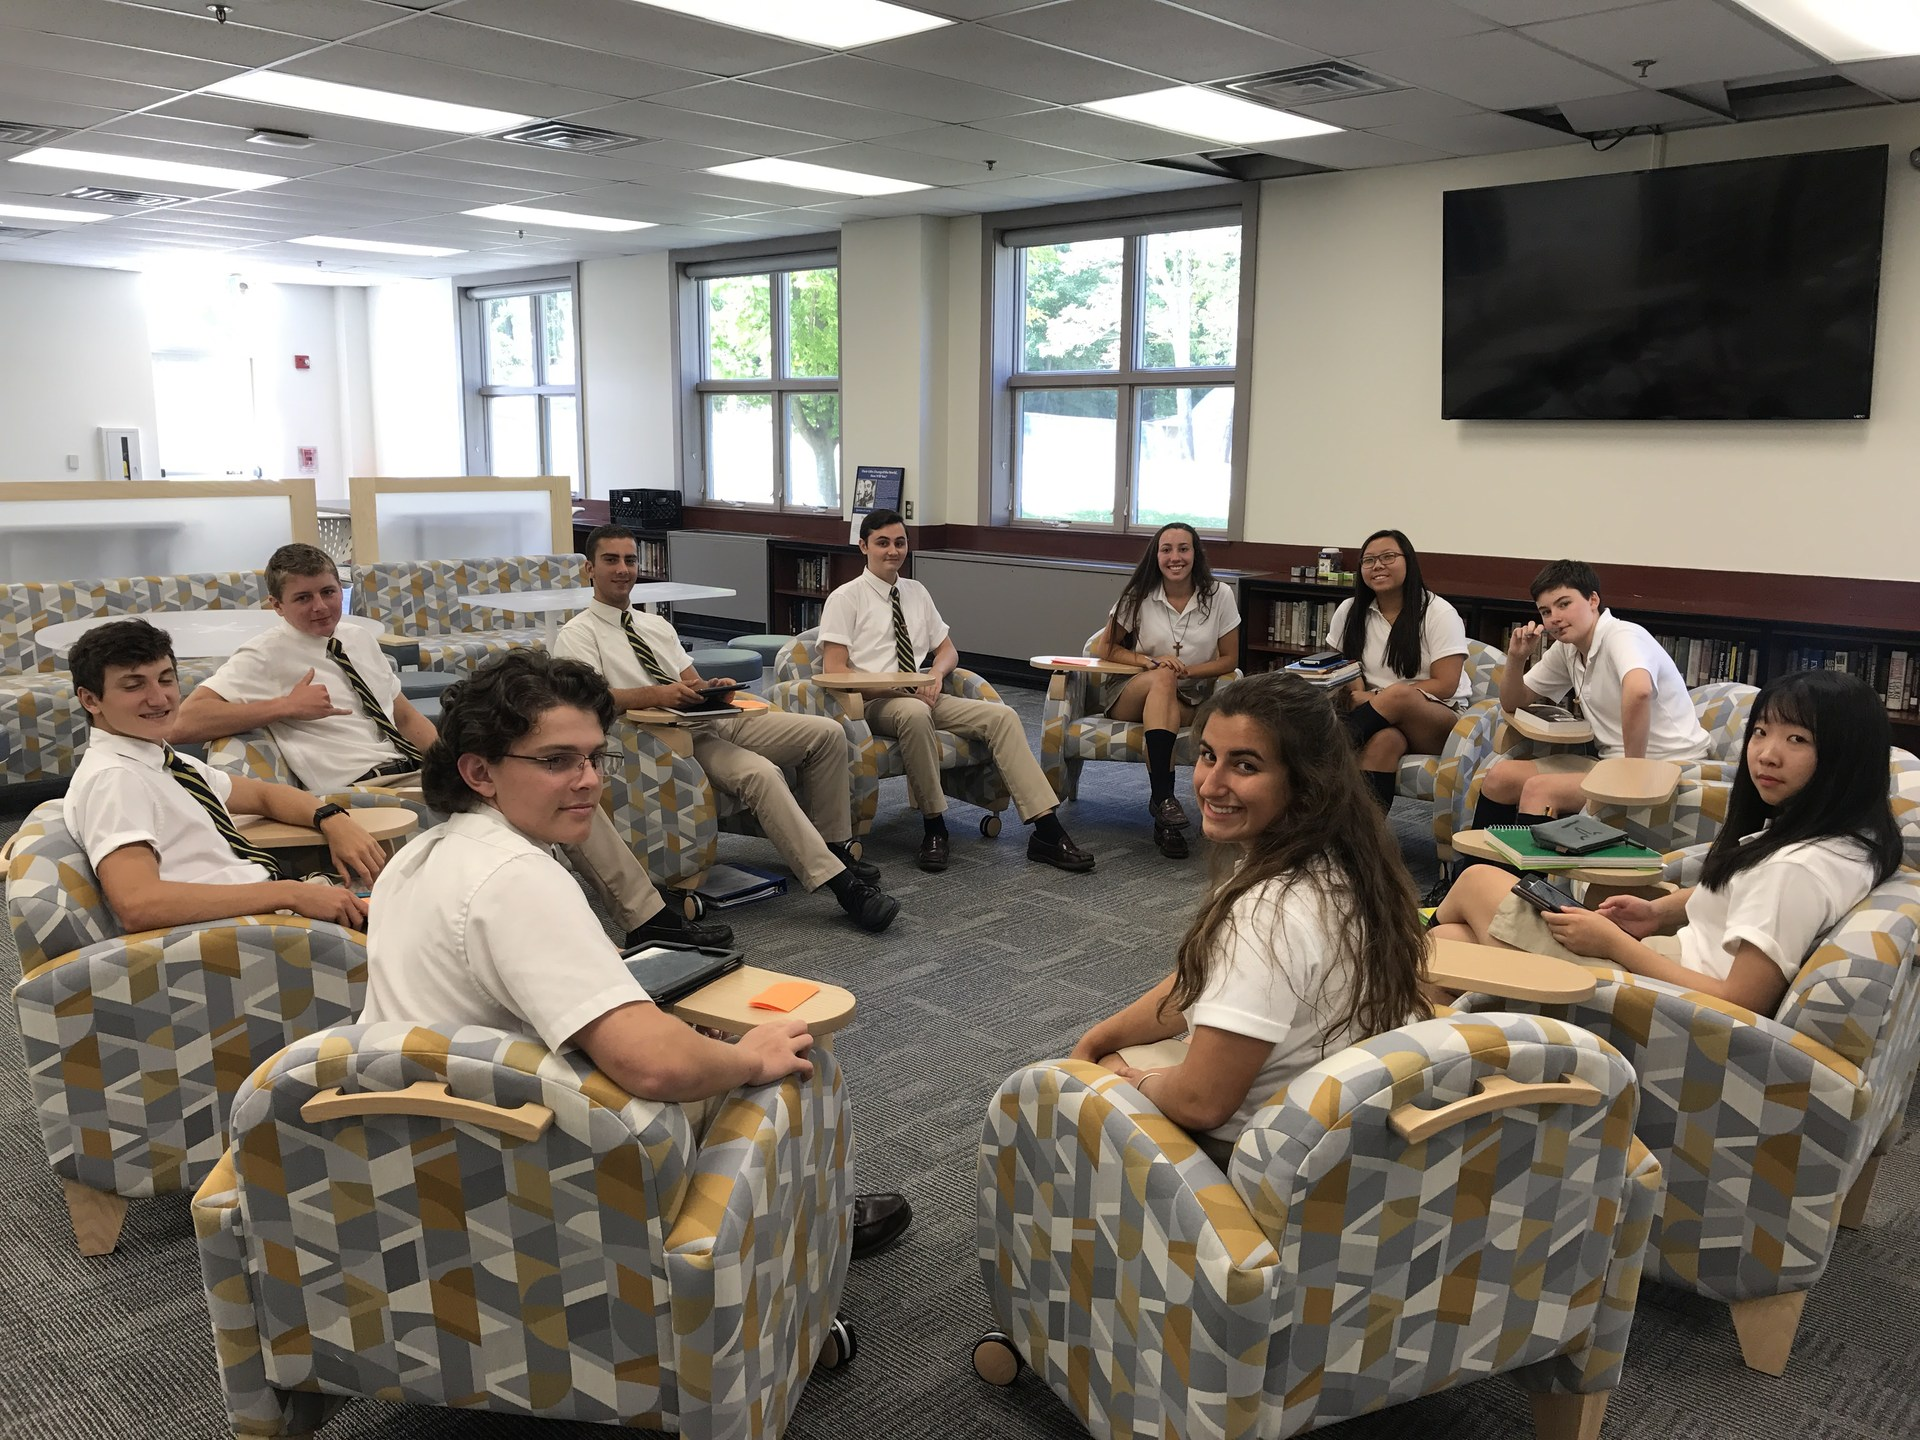 Students sitting in circle in Biondo Research Center